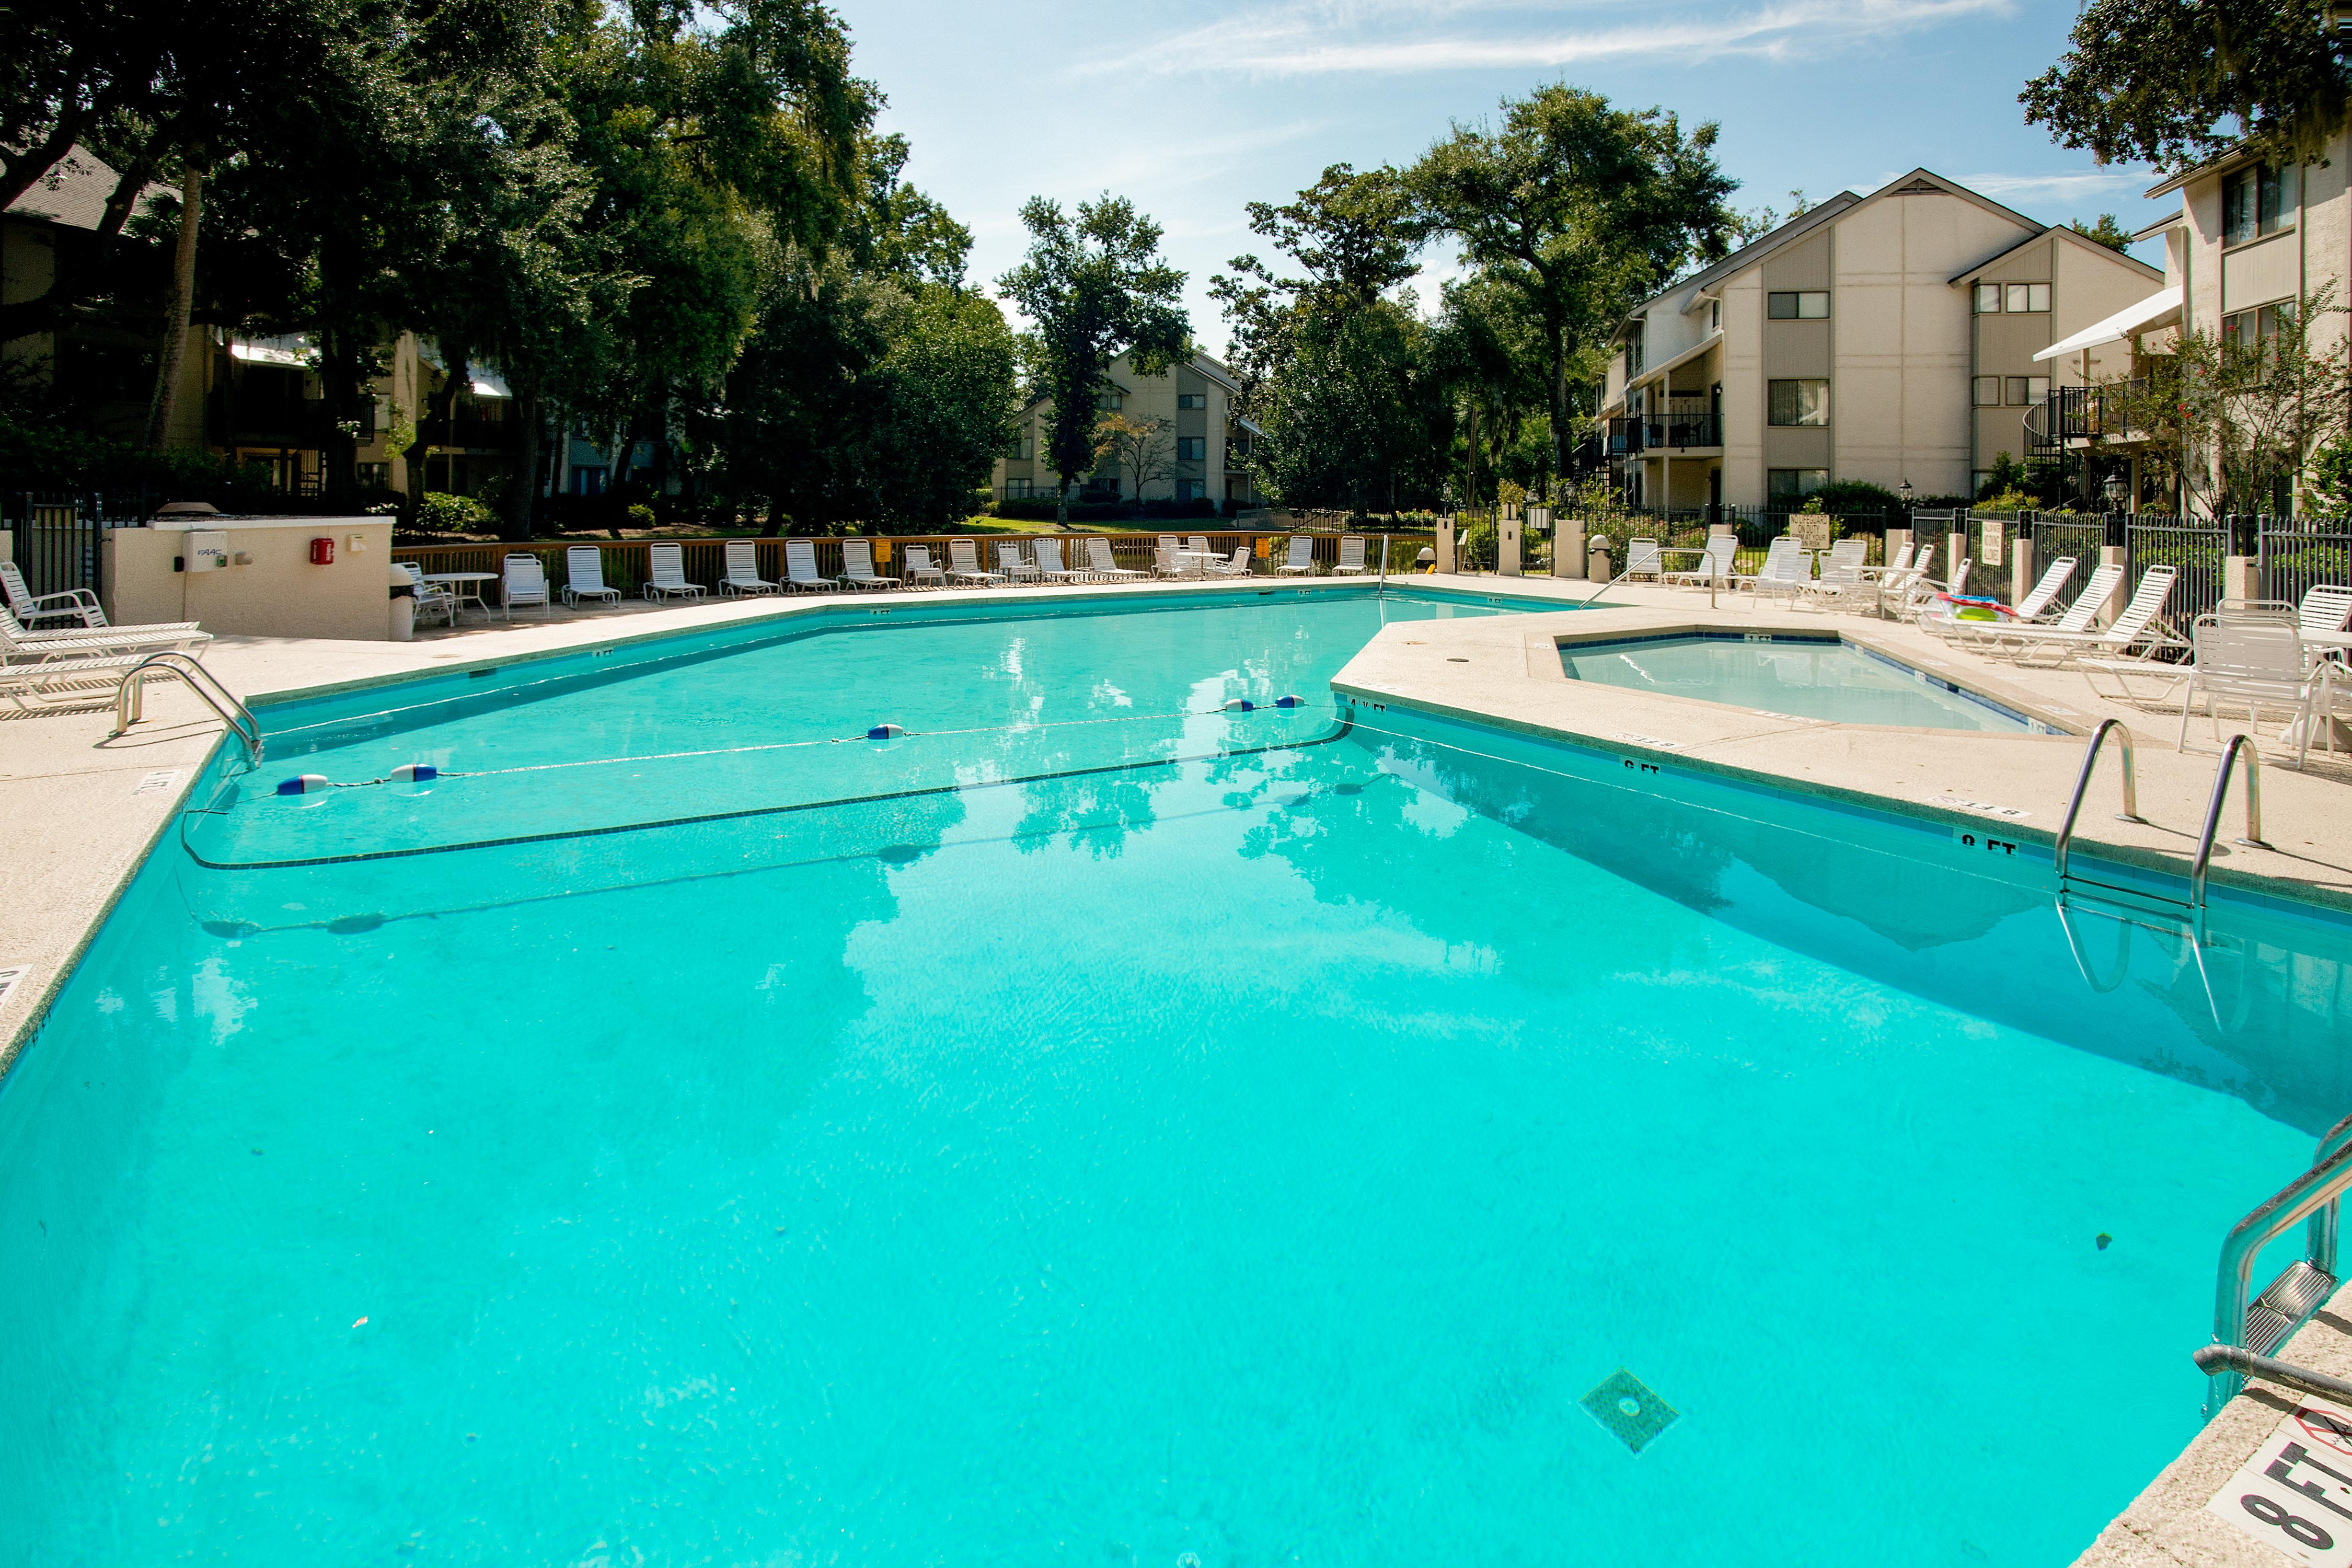 Community amenities include a sparkling pool.